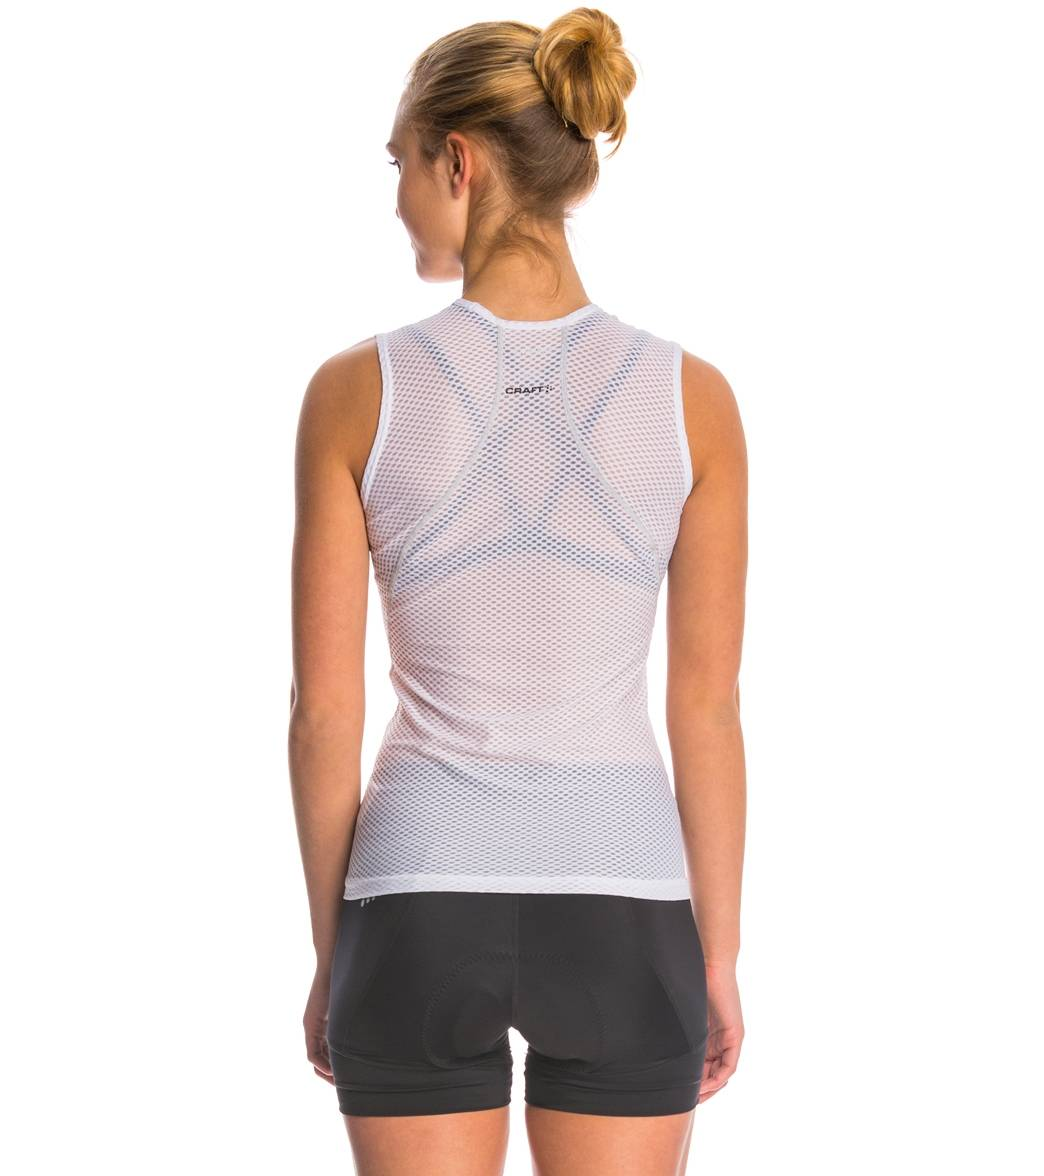 a29ee787d71b3 Craft Women s Cool Mesh Superlight SL Base Layer at SwimOutlet.com - Free  Shipping